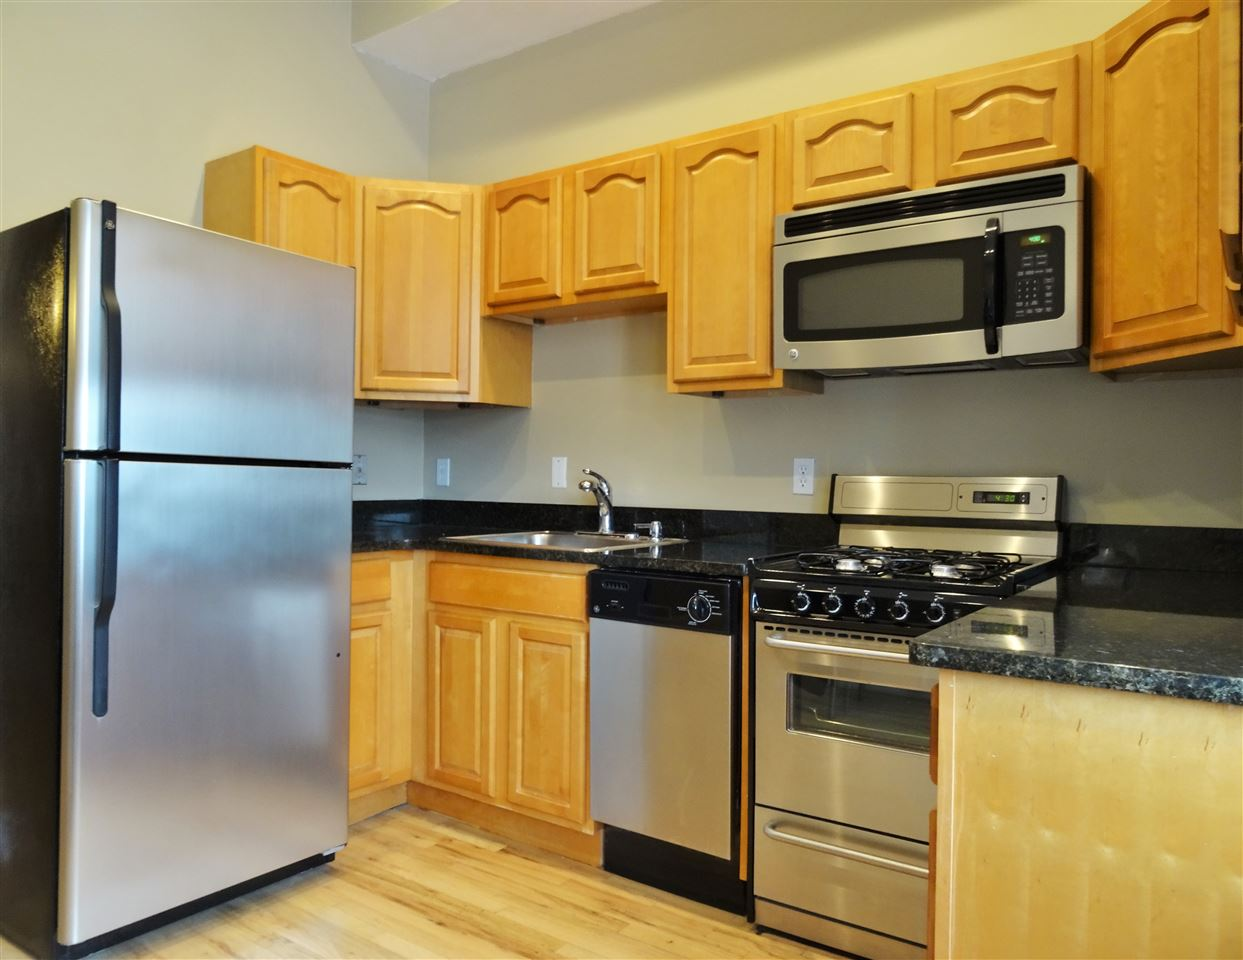 231 GRAND ST 5R, Hoboken, NJ 07030